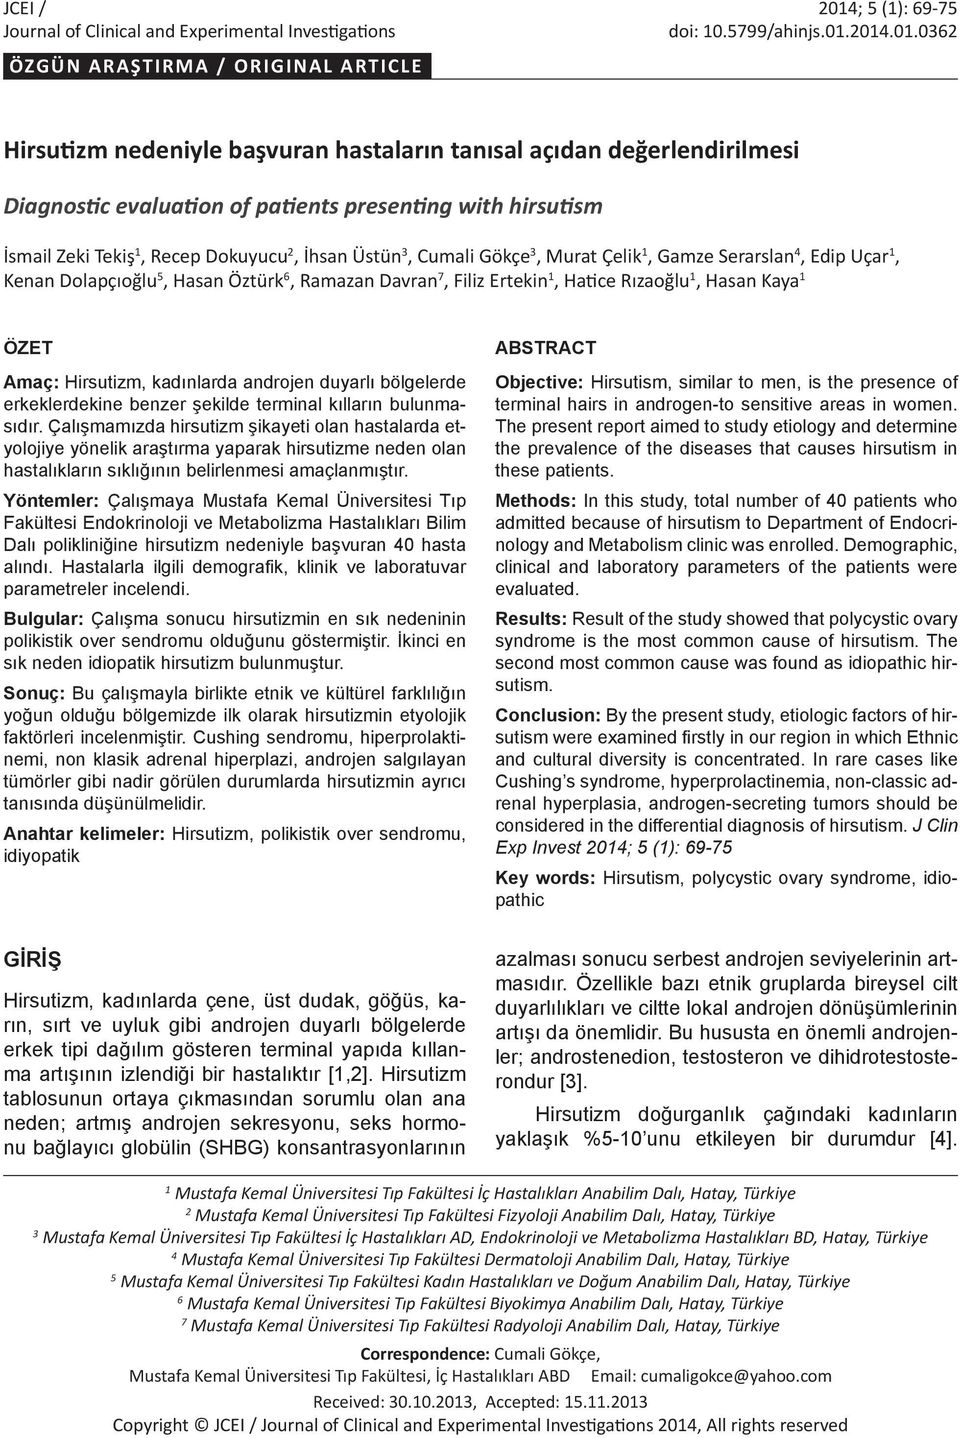 2014.01.0362 ÖZGÜN ARAŞTIRMA / ORIGINAL ARTICLE Hirsutizm nedeniyle başvuran hastaların tanısal açıdan değerlendirilmesi Diagnostic evaluation of patients presenting with hirsutism İsmail Zeki Tekiş